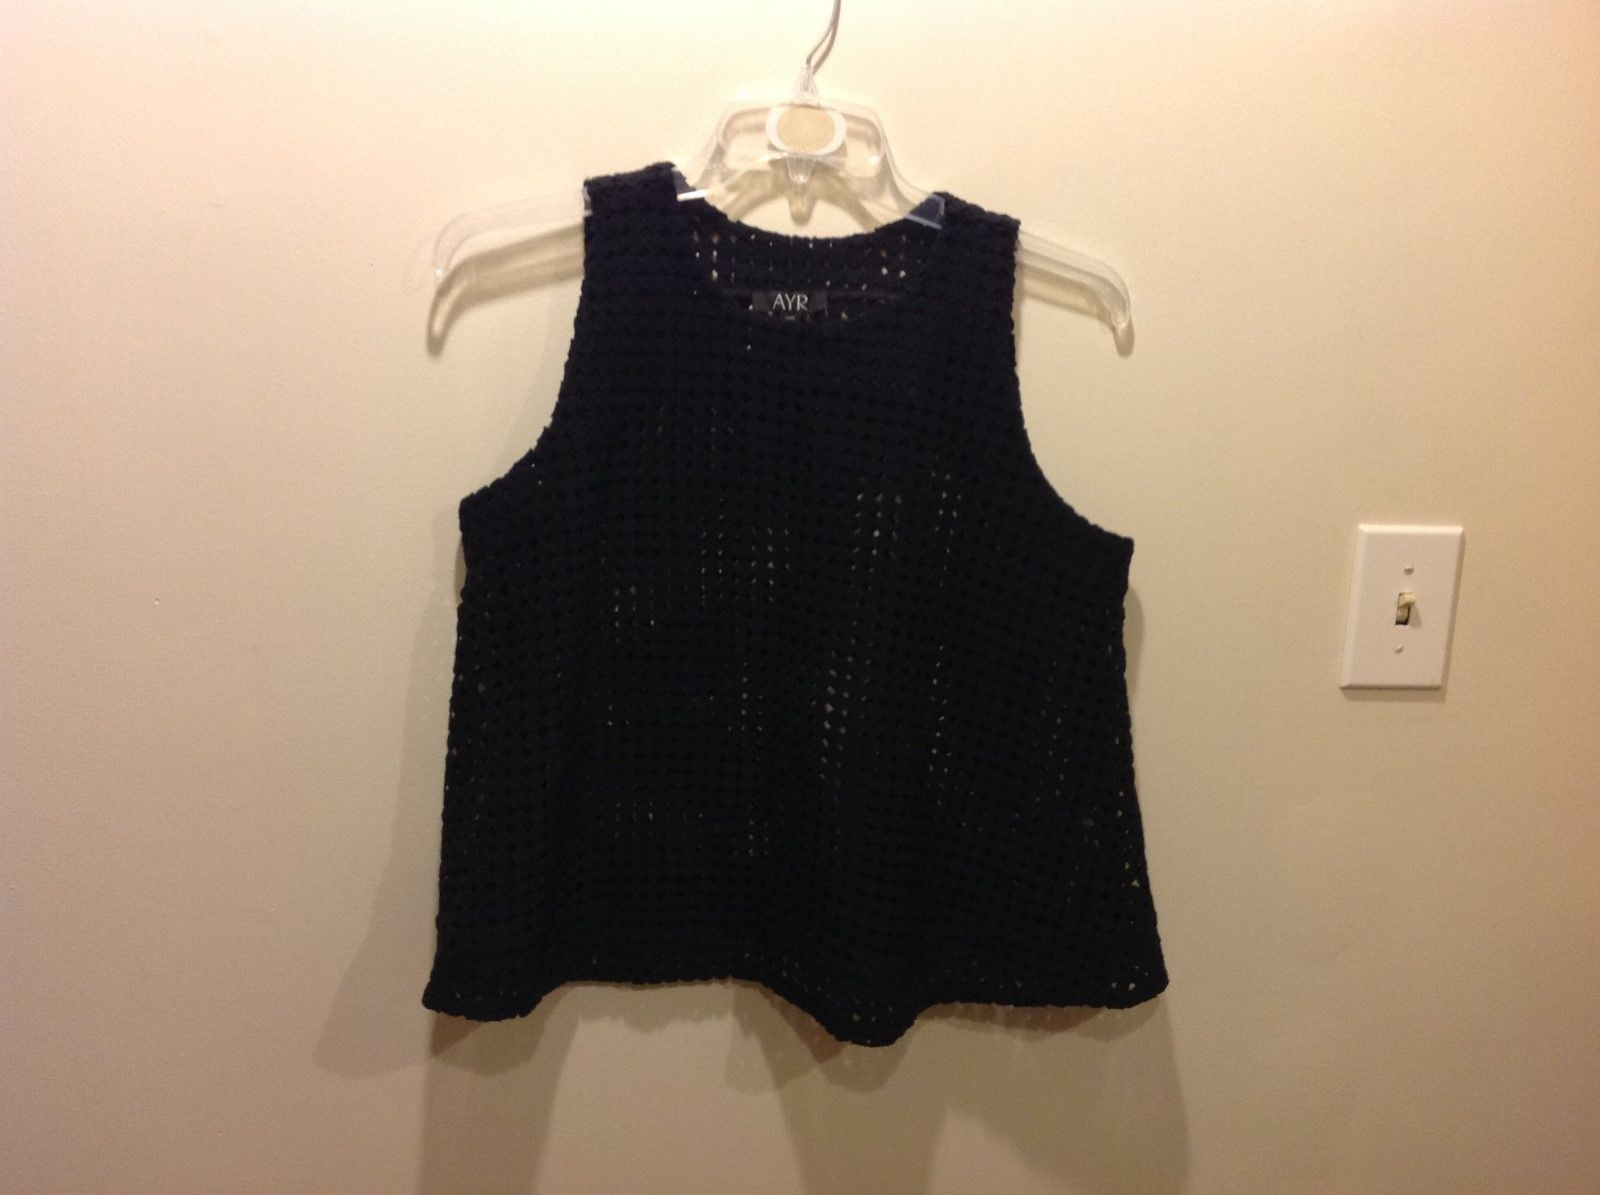 AYR Black Textured Sleeveless Blouse w Circular Geometric Pattern